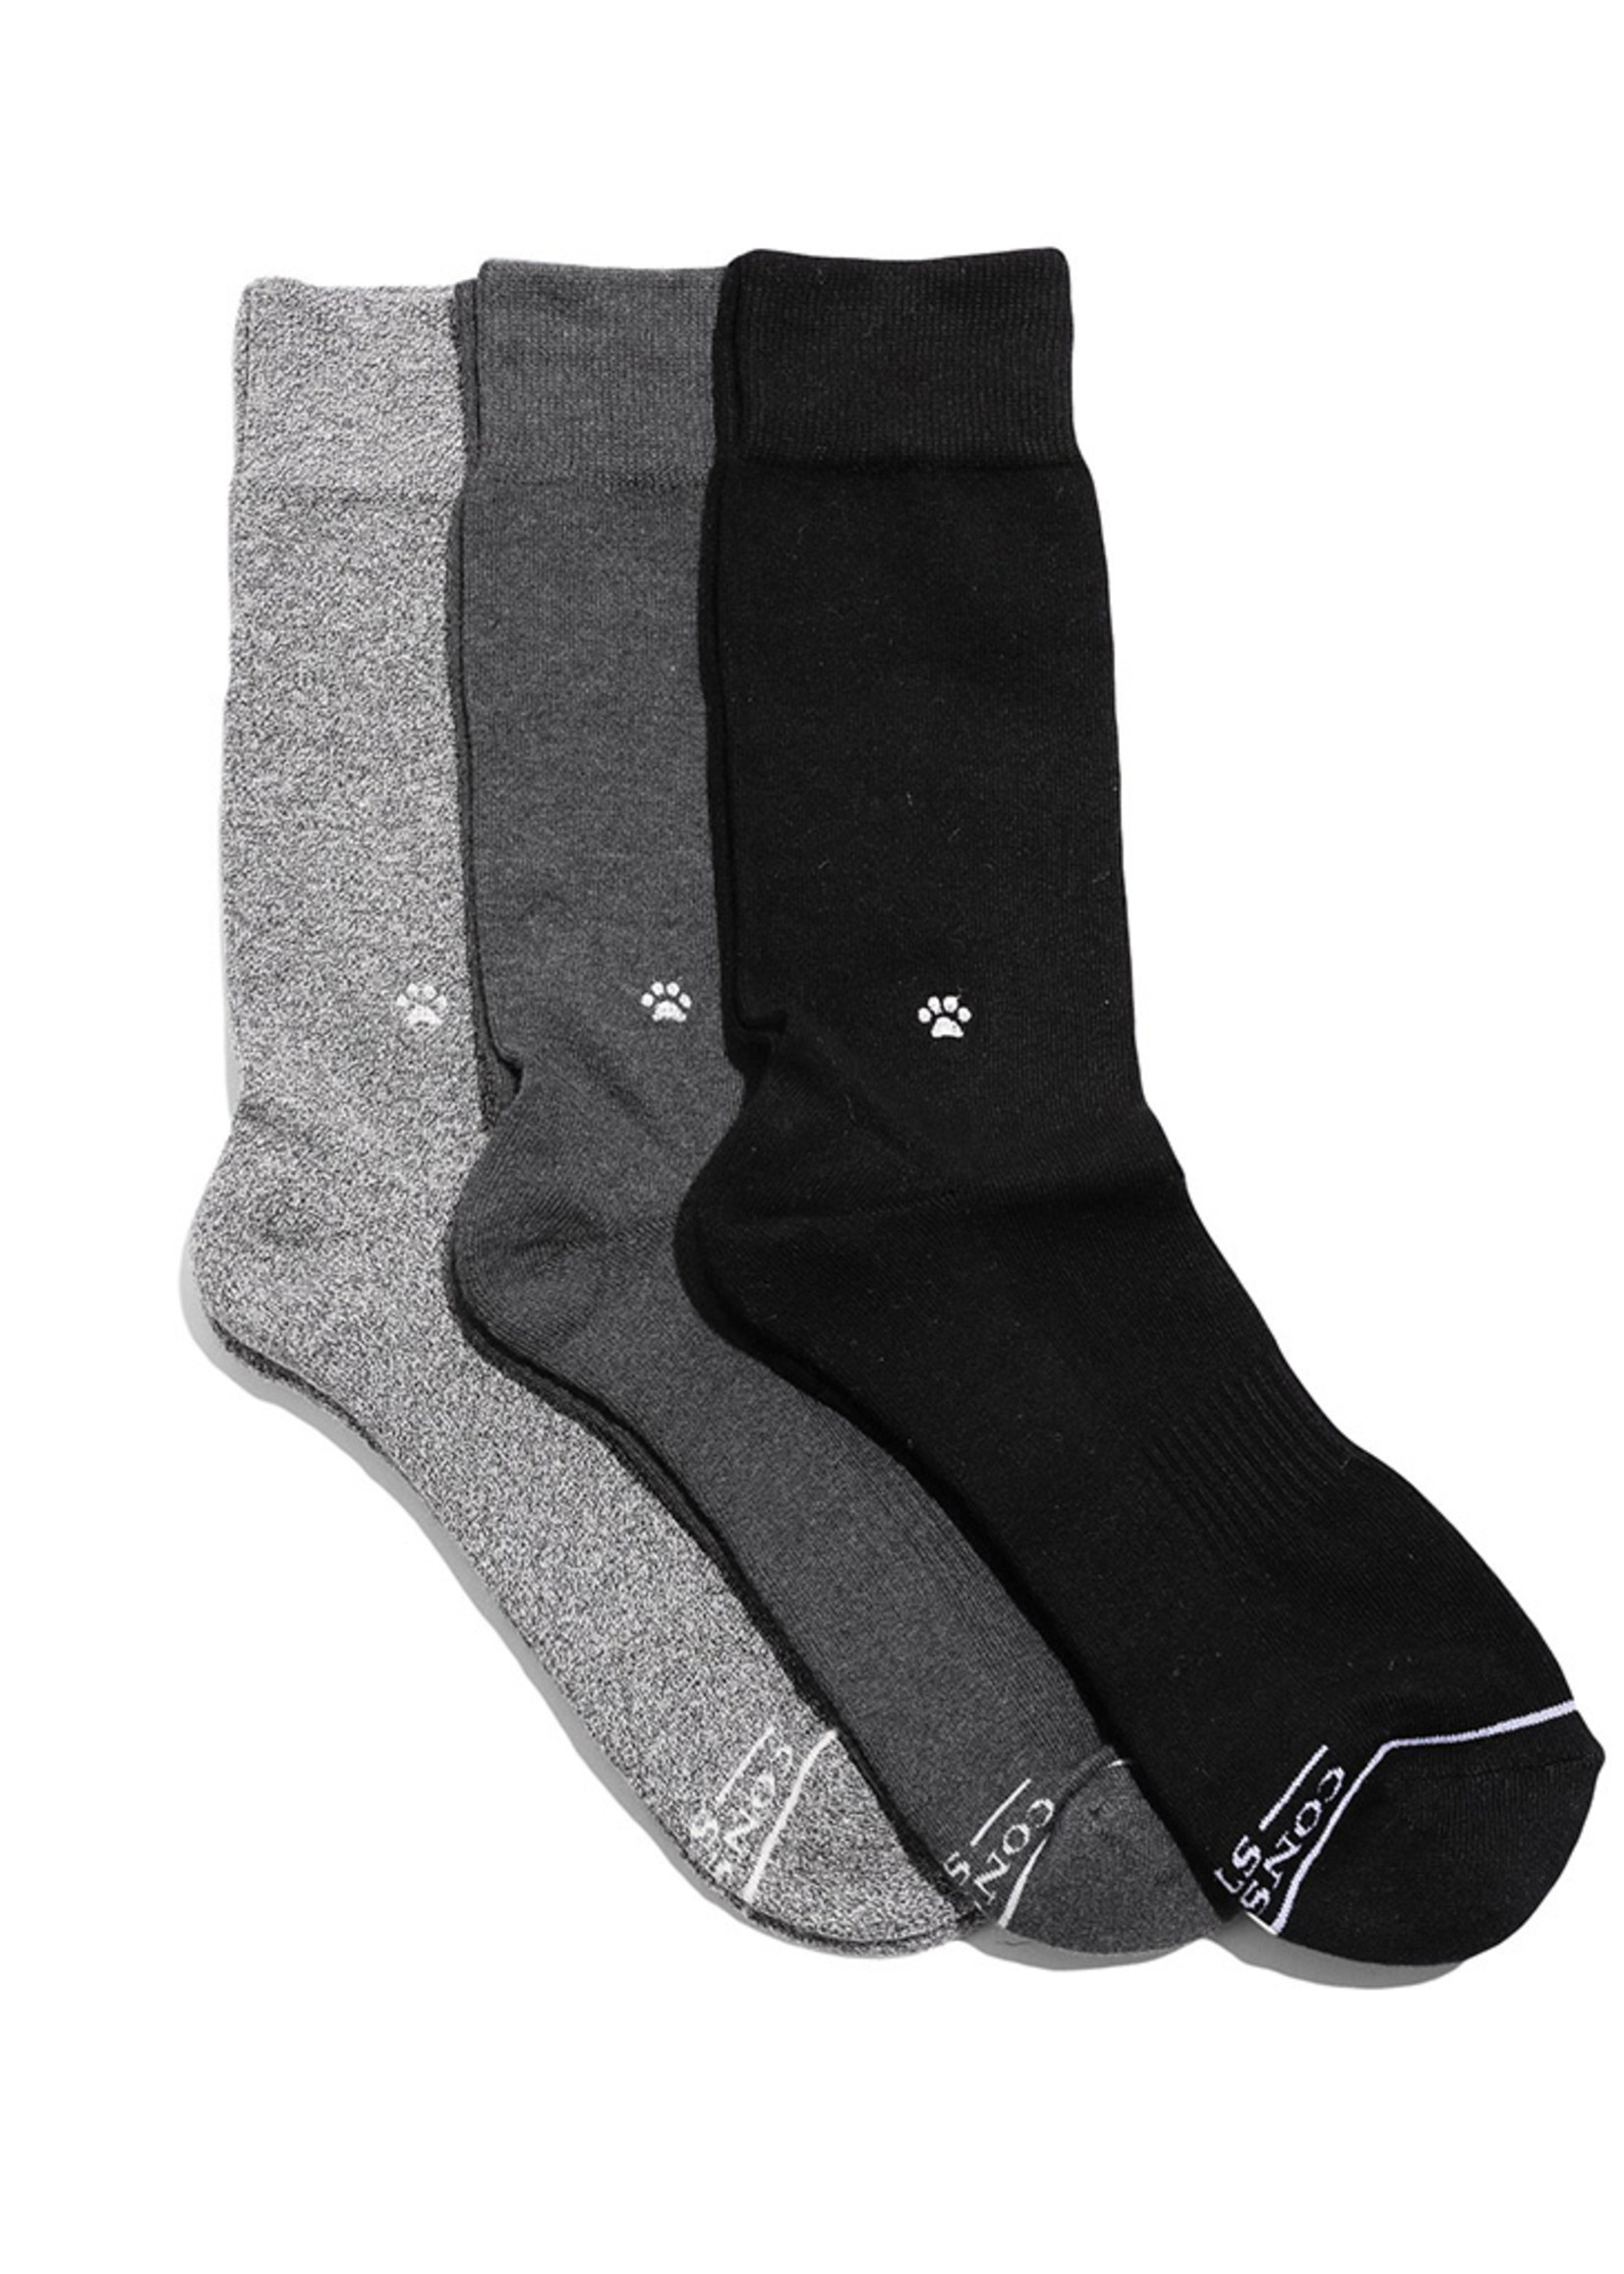 Conscious Step Men's Box of Socks That Save Dogs